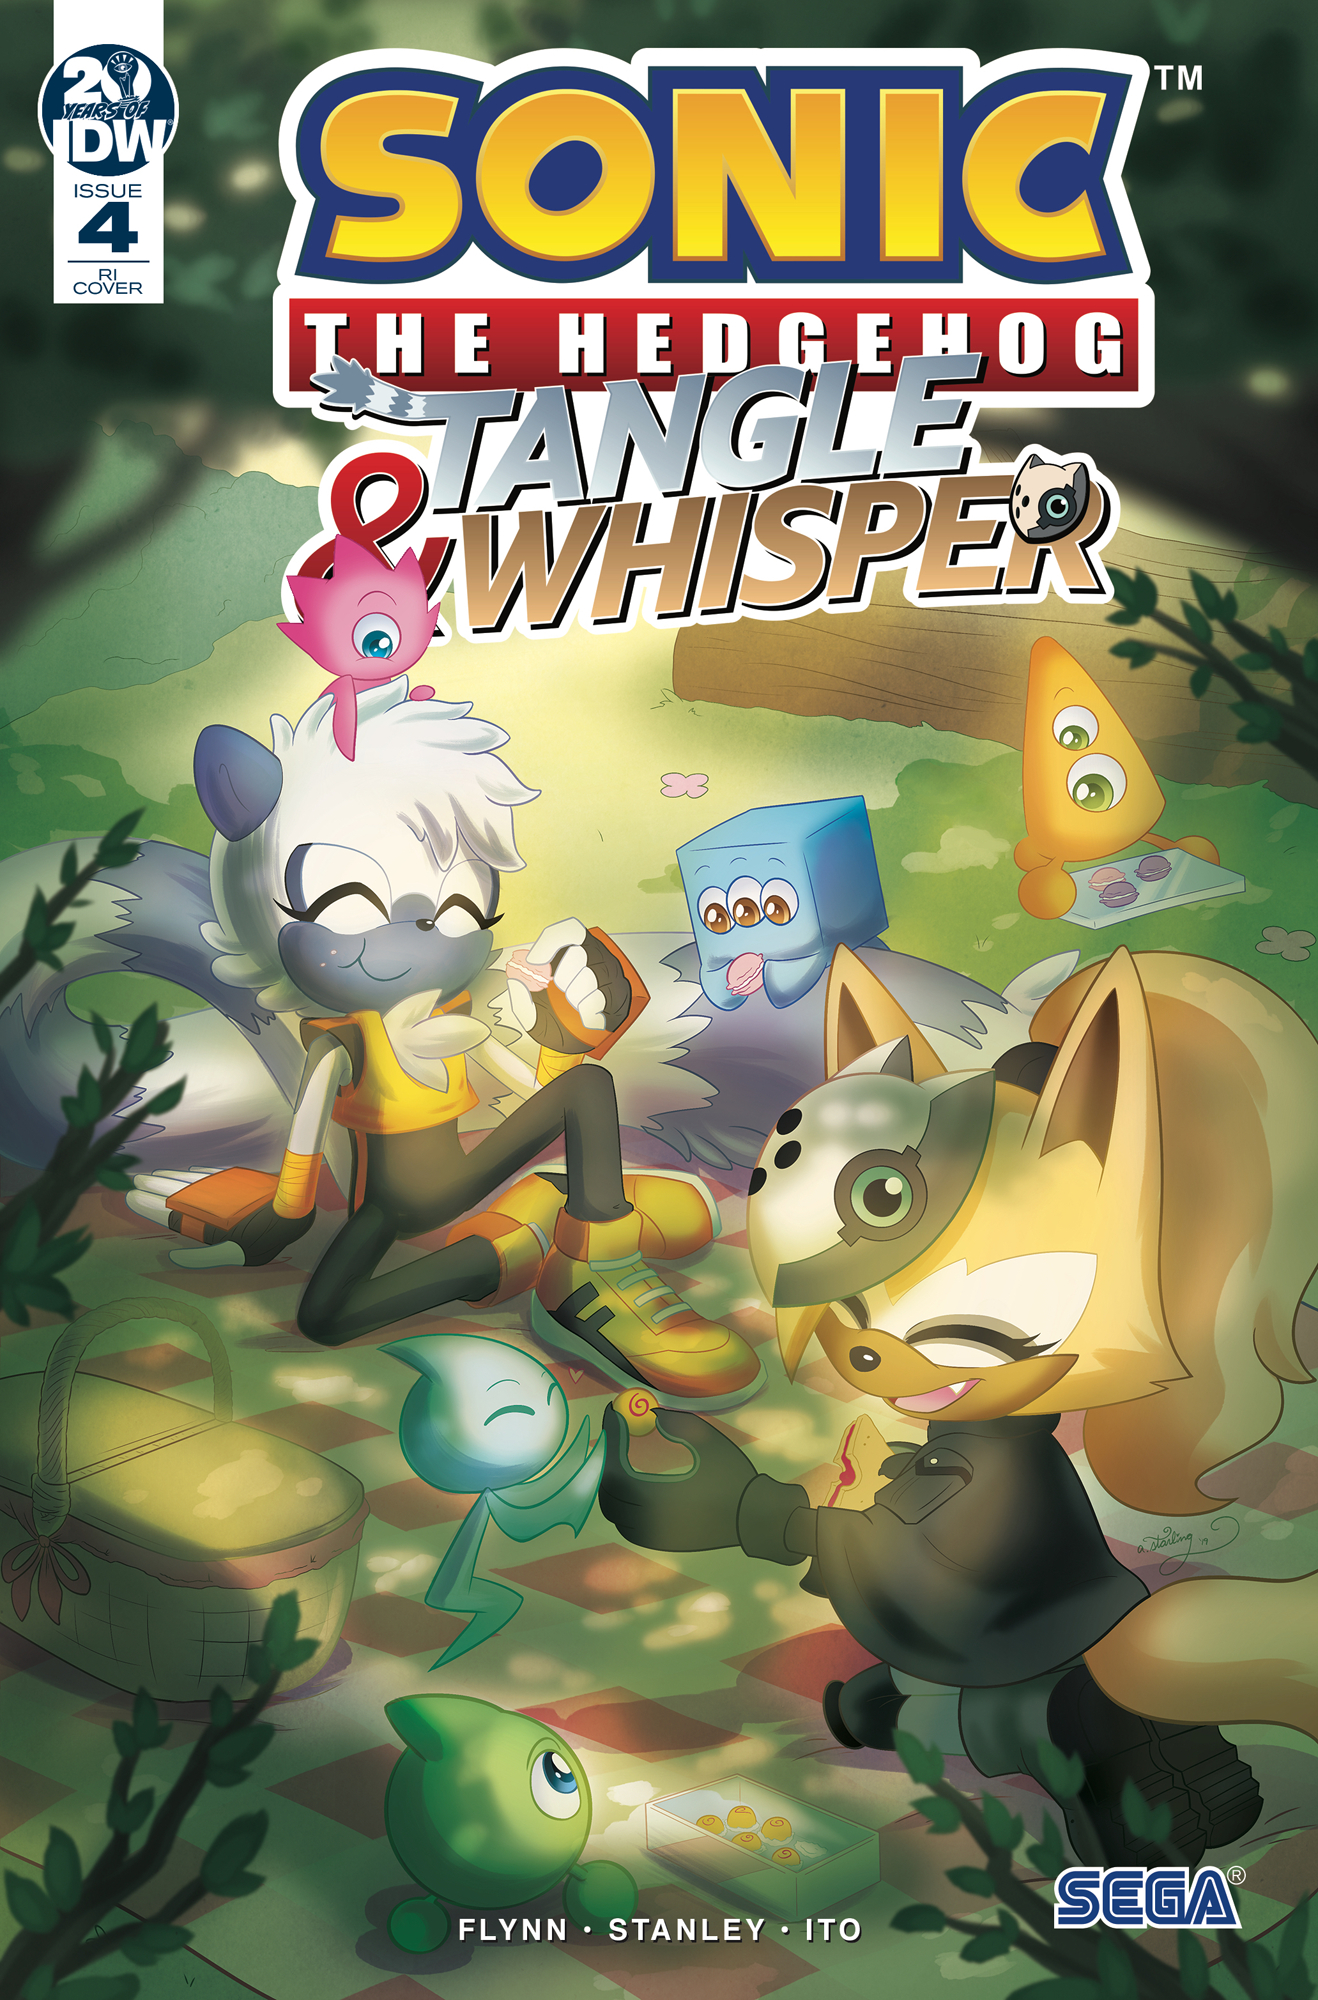 SONIC THE HEDGEHOG TANGLE & WHISPER #4 (OF 4) 10 COPY INCV S